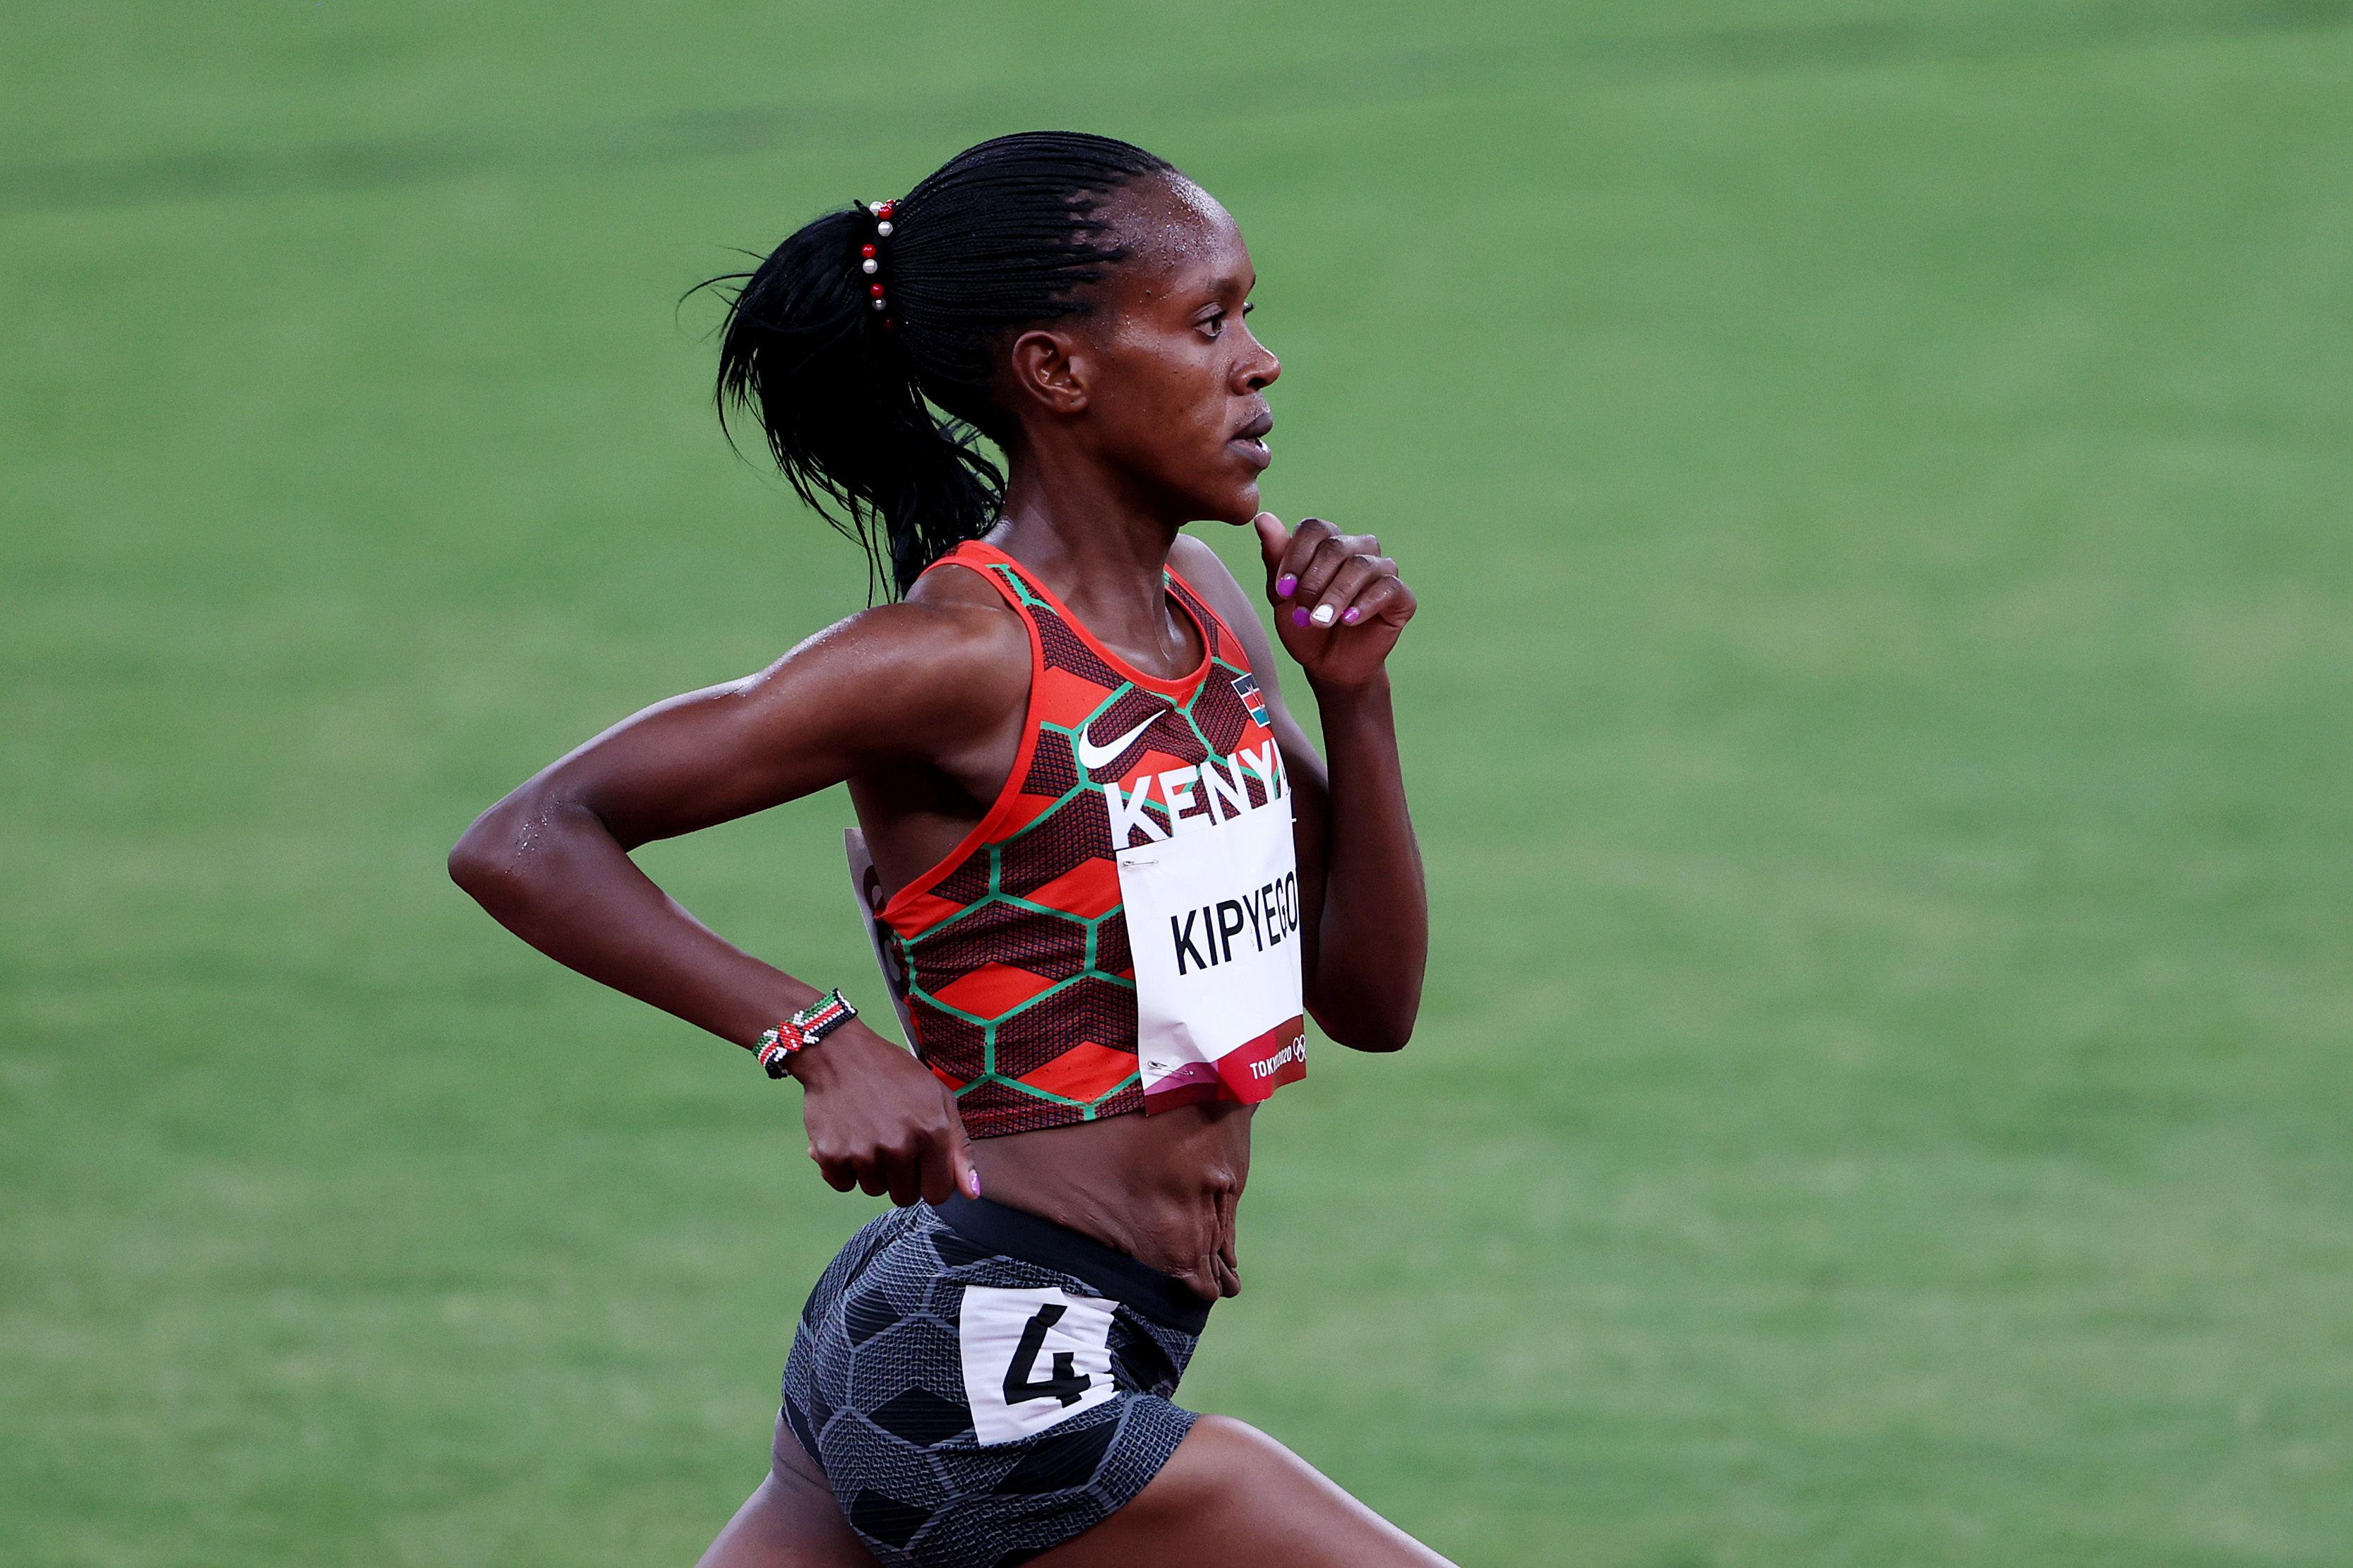 Faith Kipyegon of Team Kenya competes in the Women's 1500m Semi Final on day twelve of the Tokyo 2020 Olympic Games at Olympic Stadium on August 04, 2021 in Tokyo, Japan.